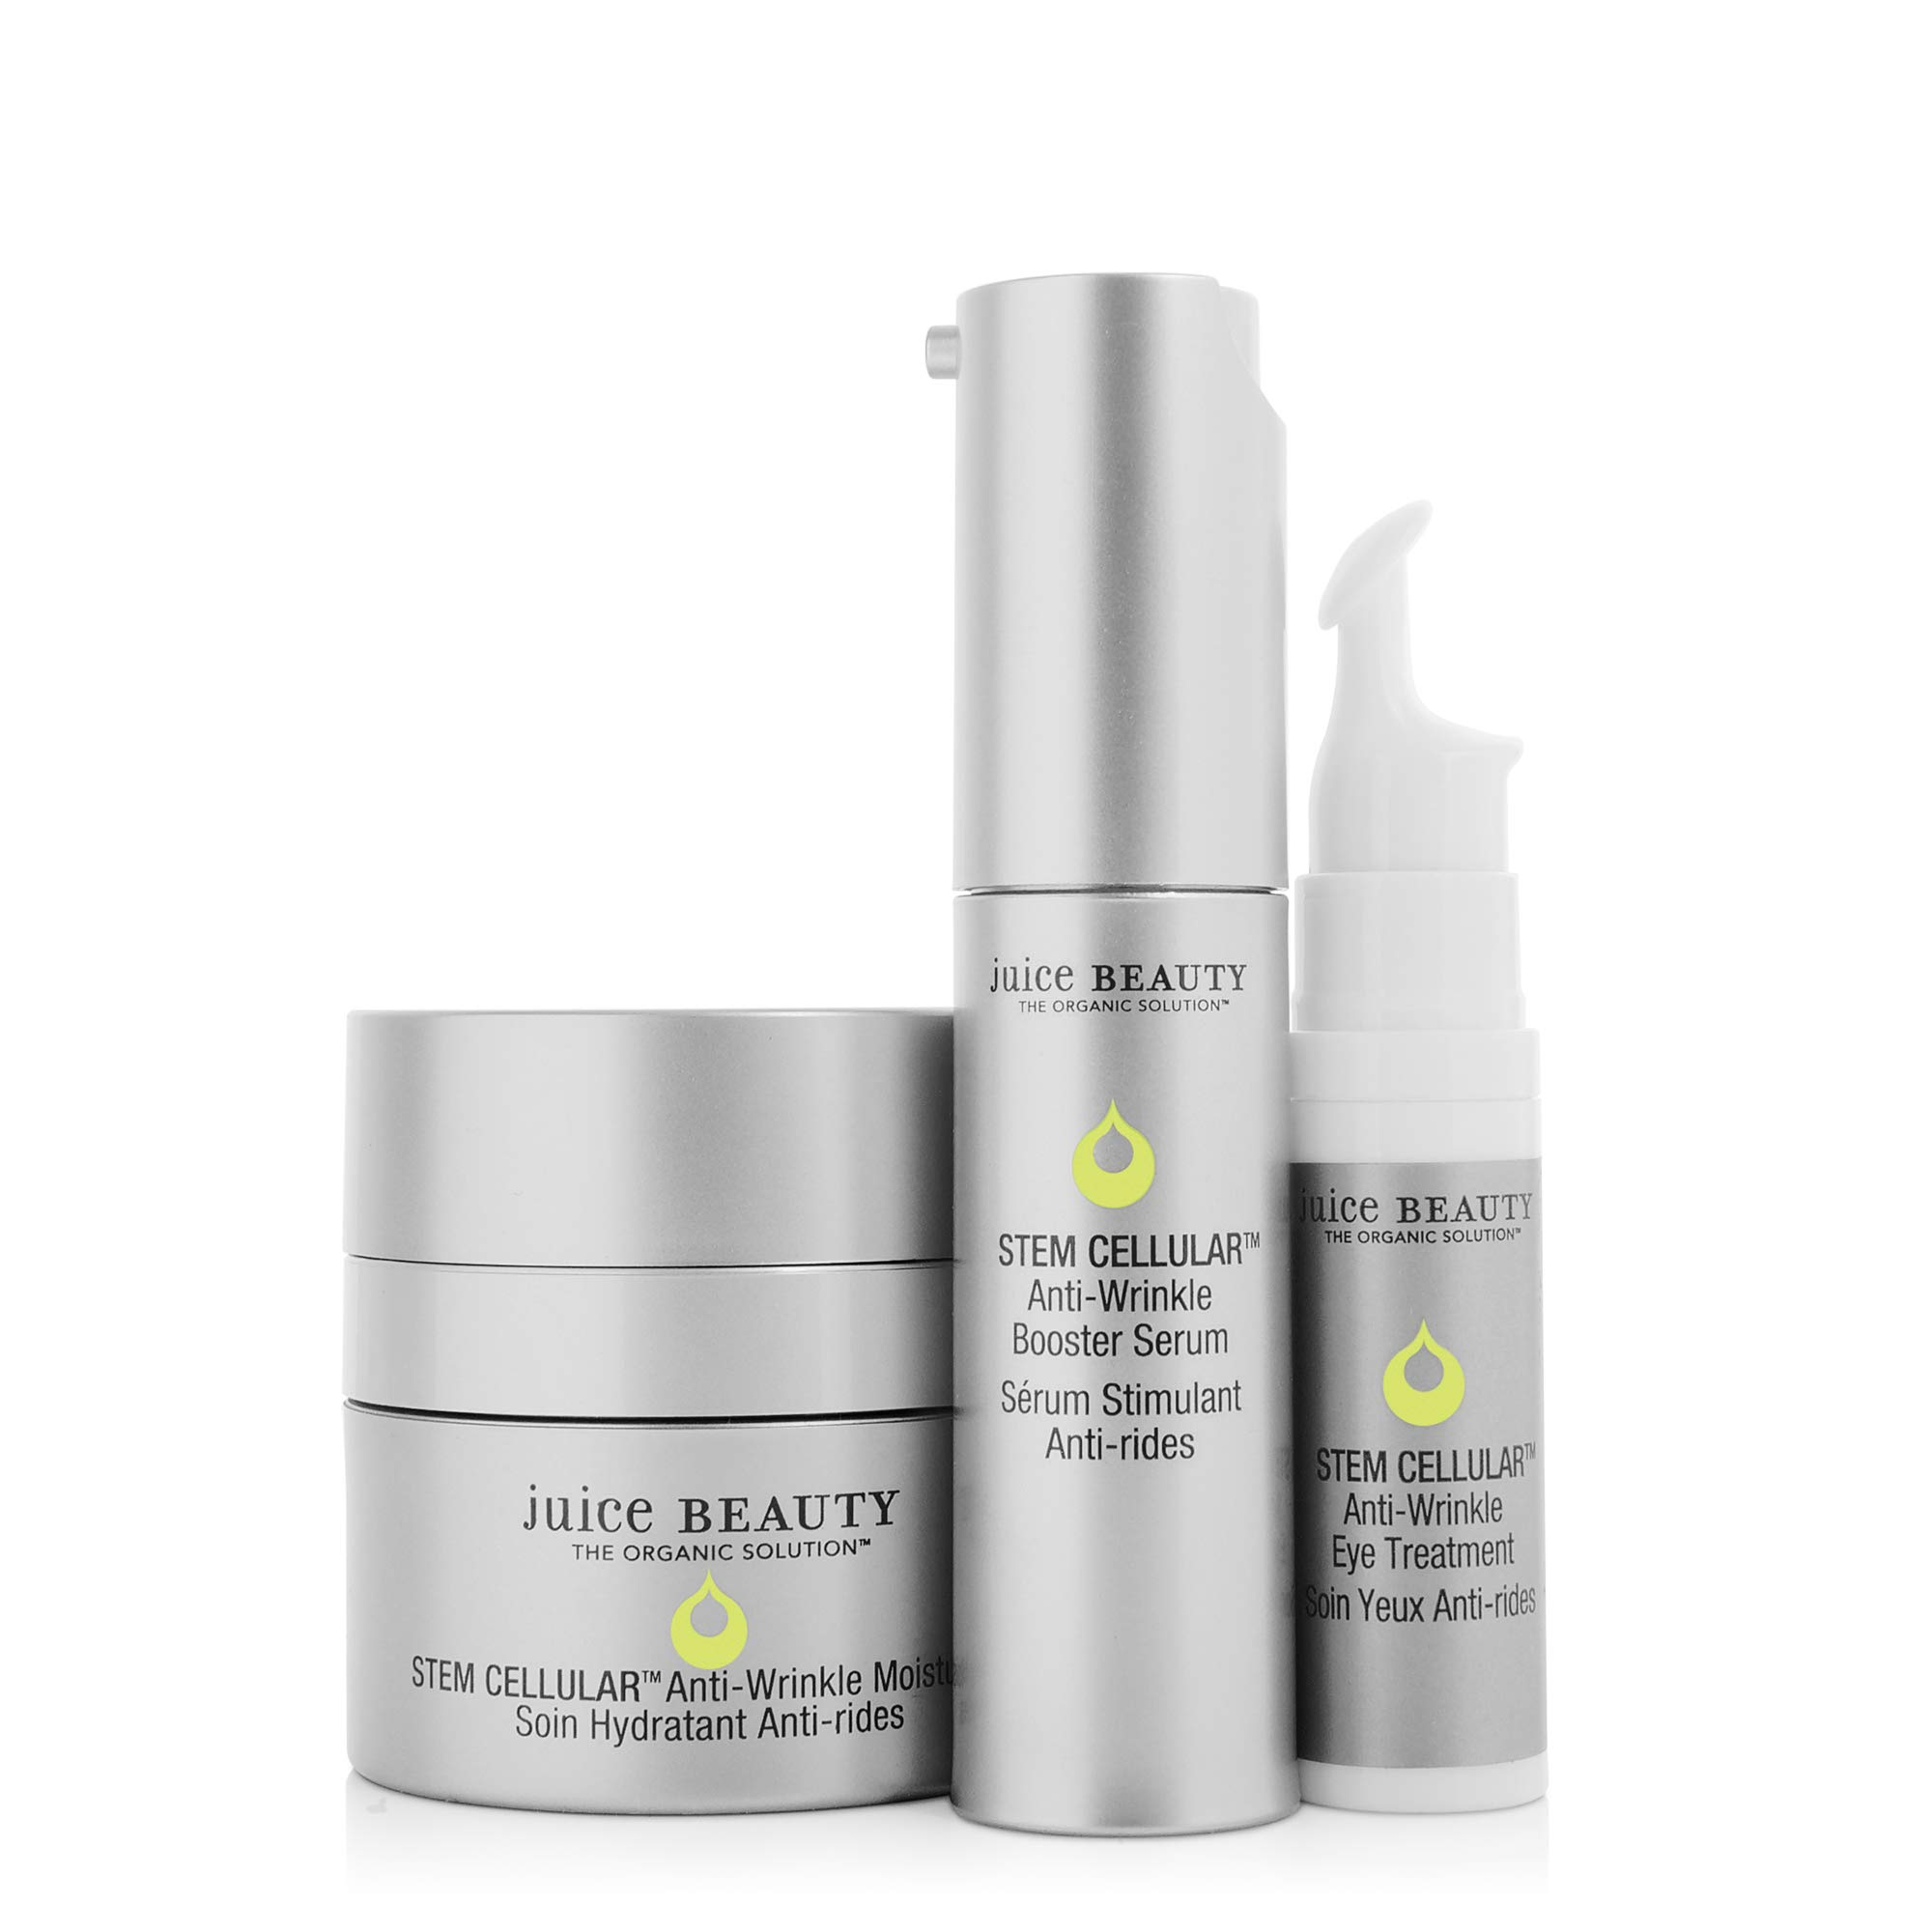 Juice Beauty Stem Cellular Anti-Wrinkle Solutions Kit by Juice Beauty